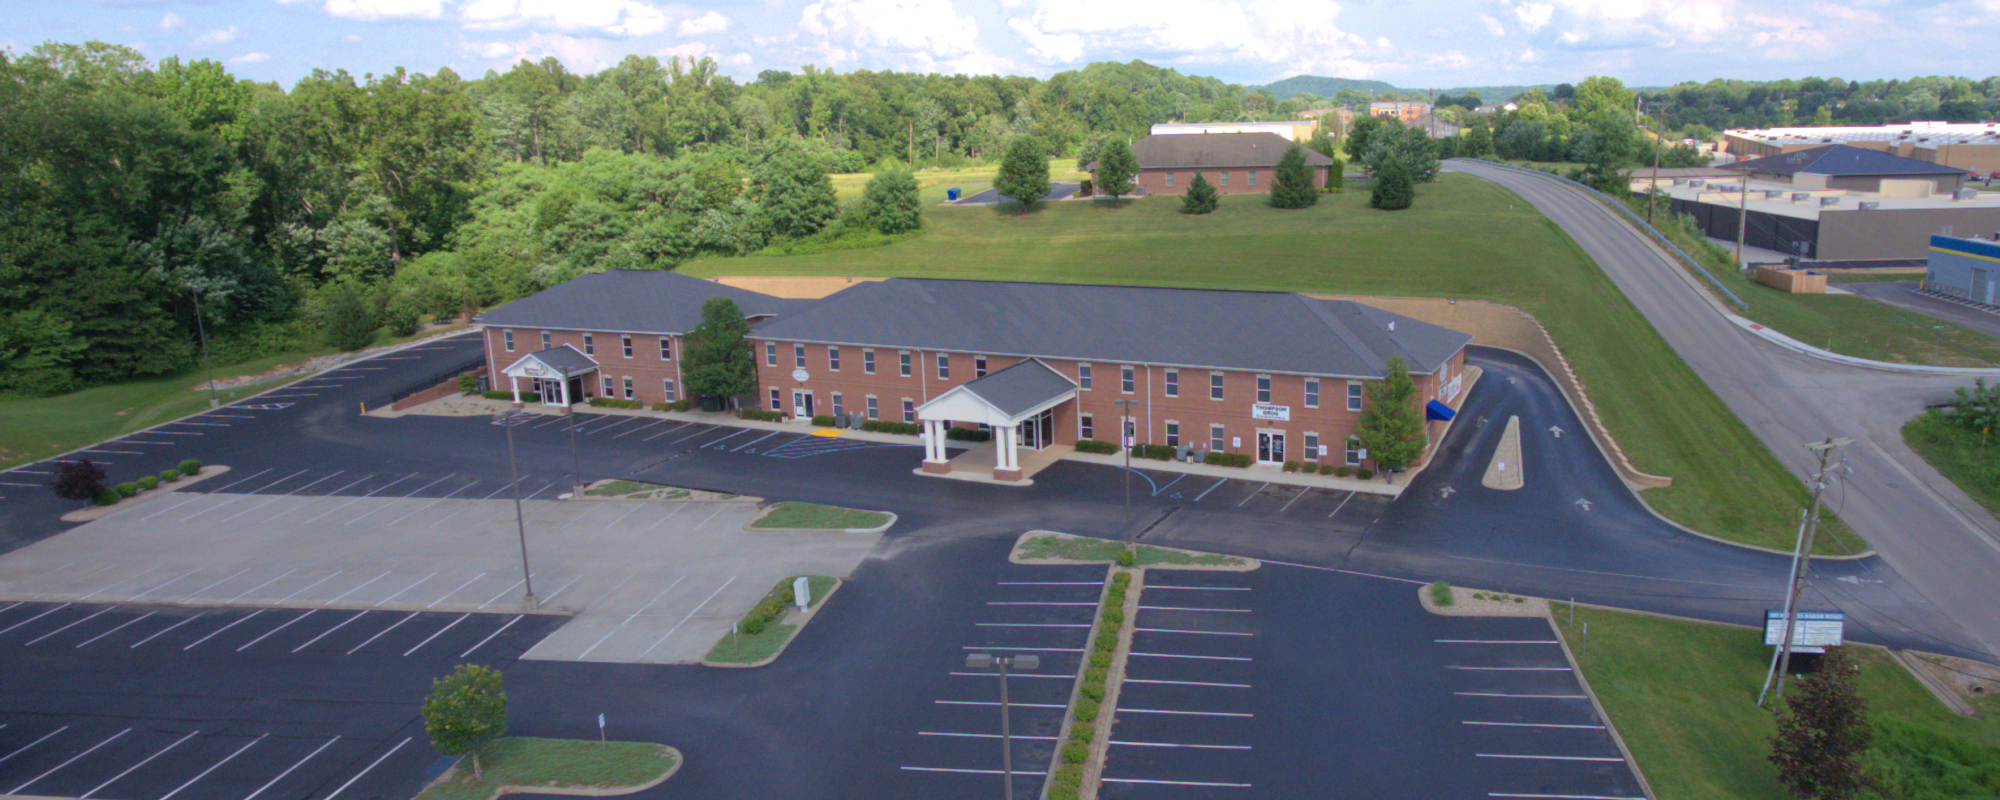 LWC Is A Multi-Specialty Facility